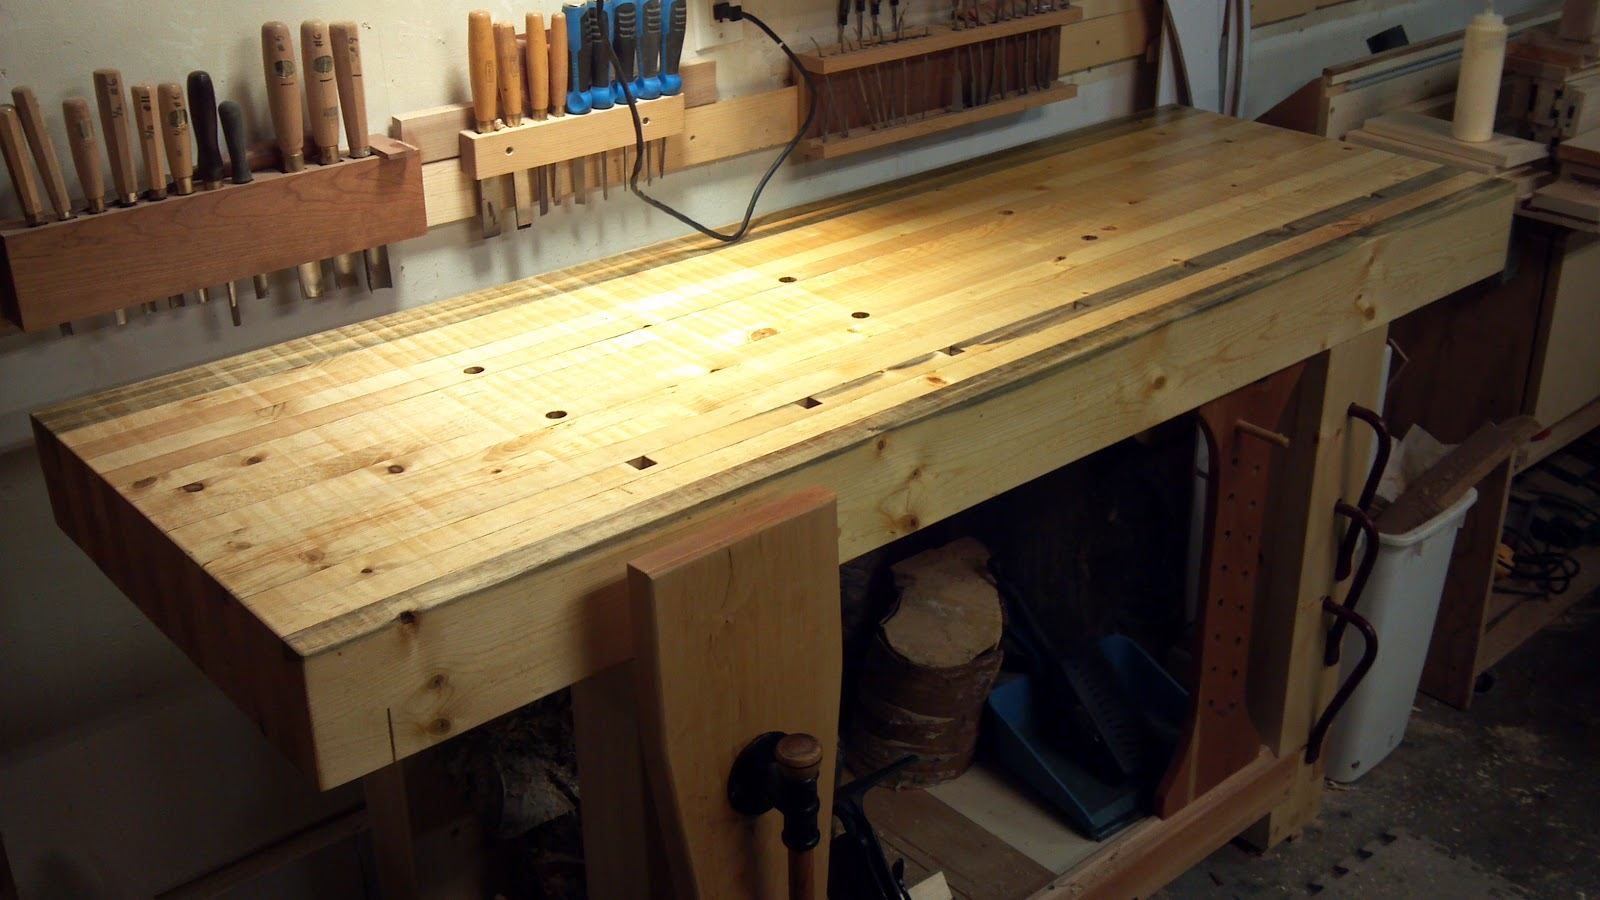 This Is The Best Bench I Ever Made!